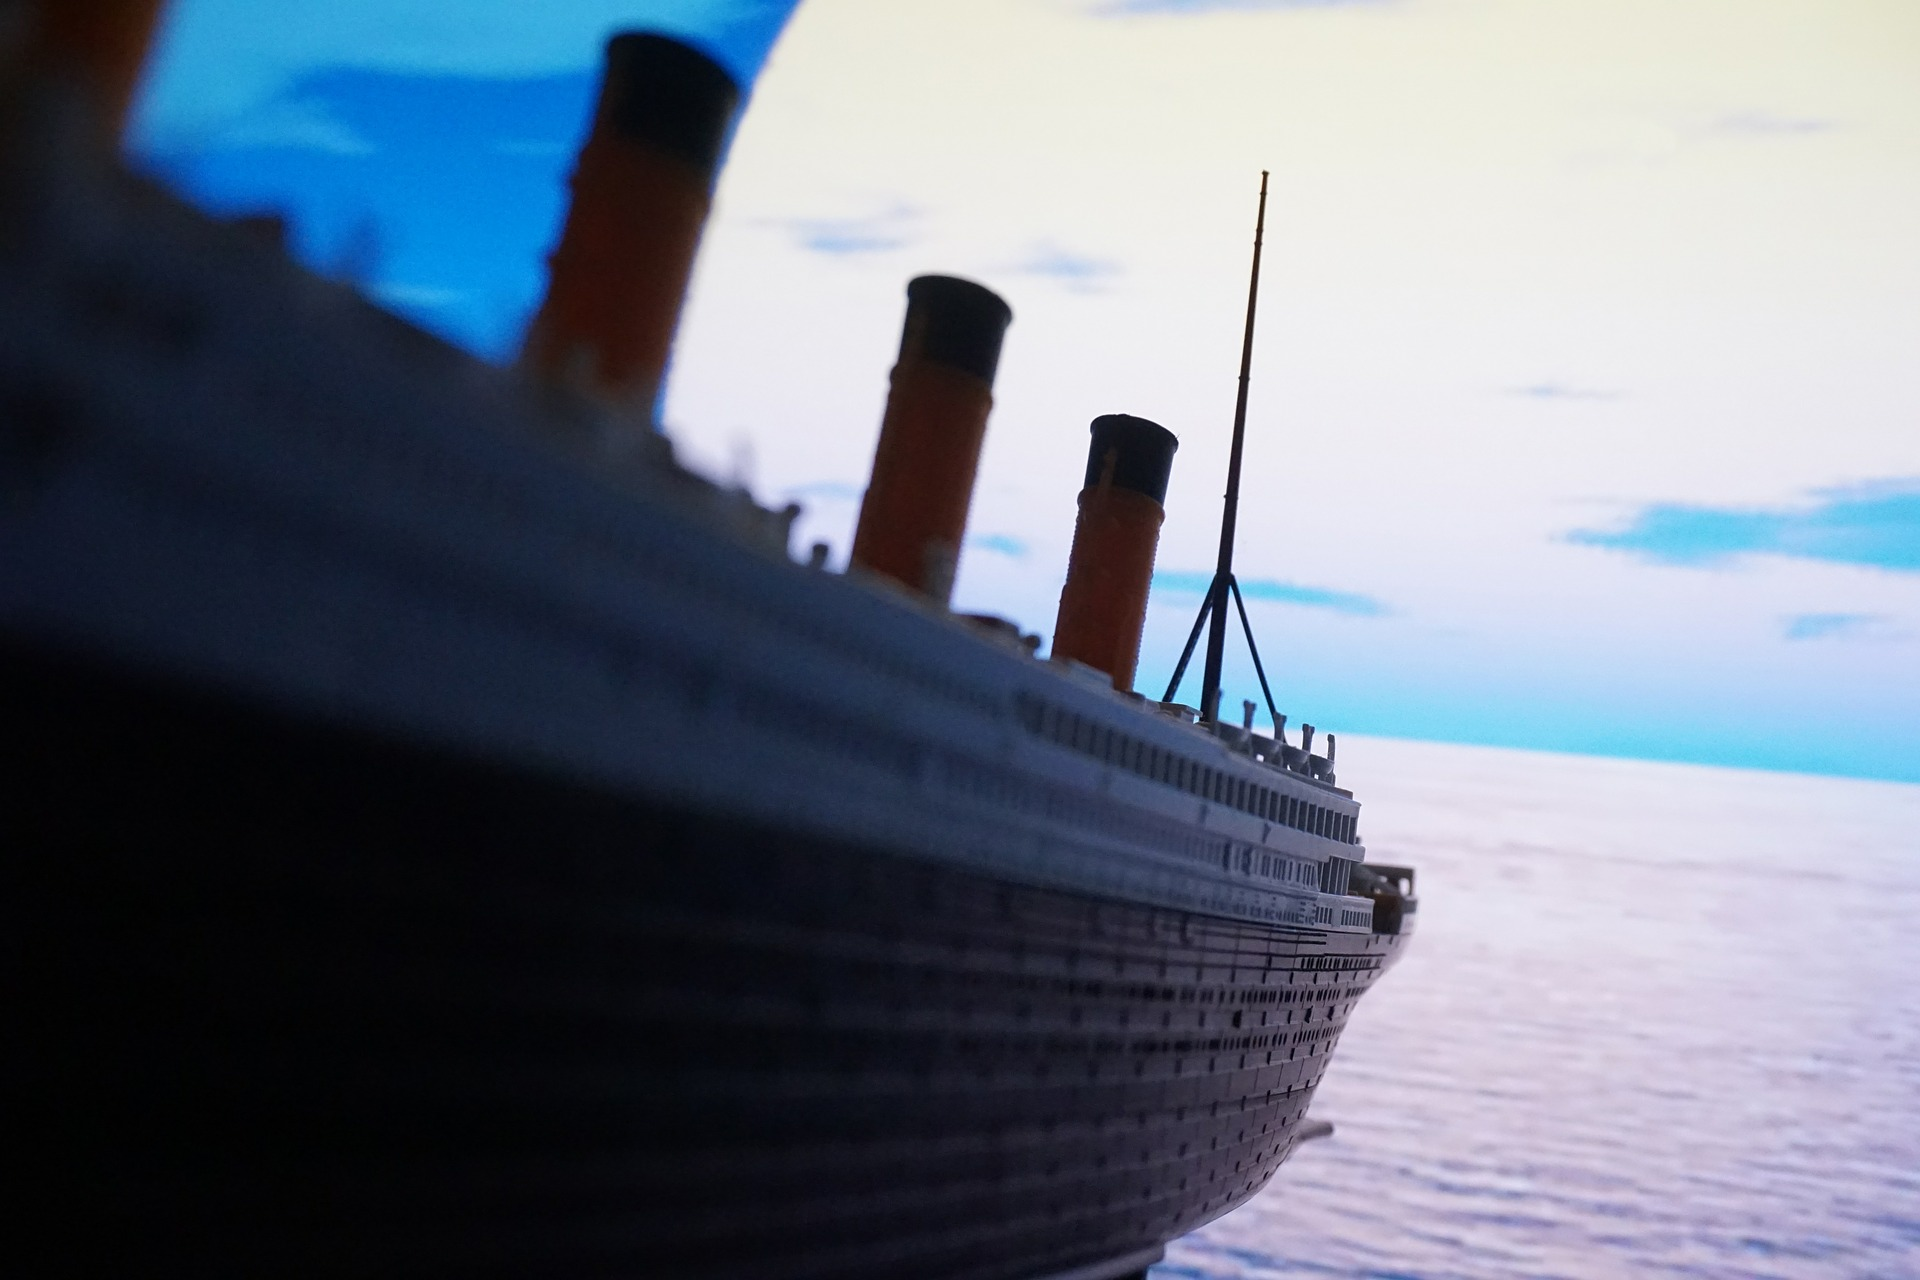 Titanic II Luxury Vessel to Set Sail in 2022